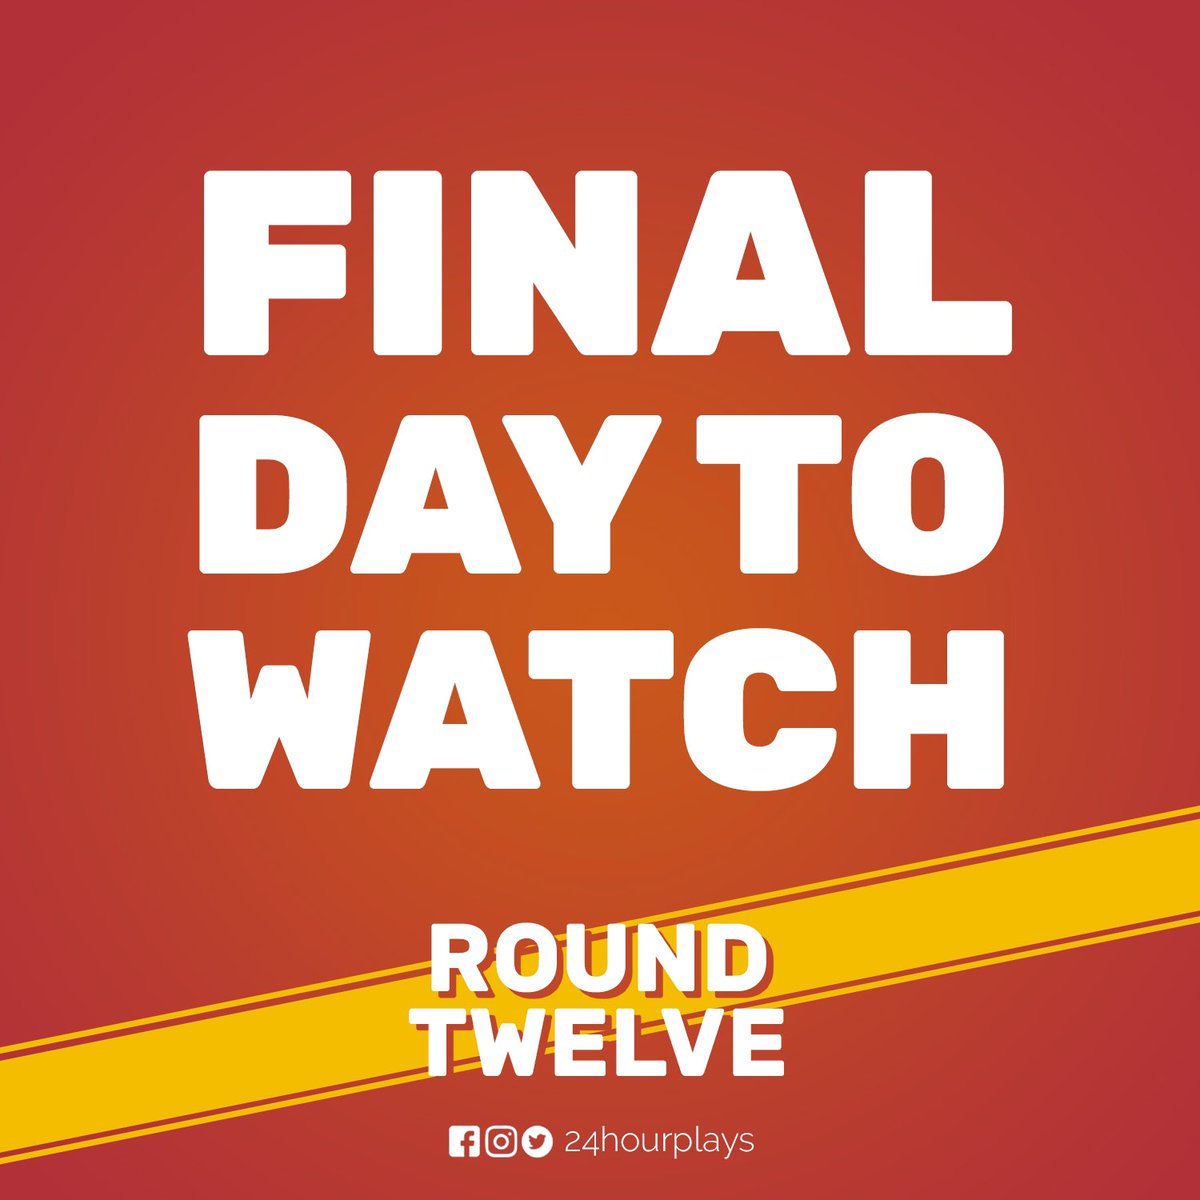 Final day to watch #24ViralMonologues Round Twelve! Did you know they're on YouTube? ⏱➡️ youtube.com/playlist?list=…